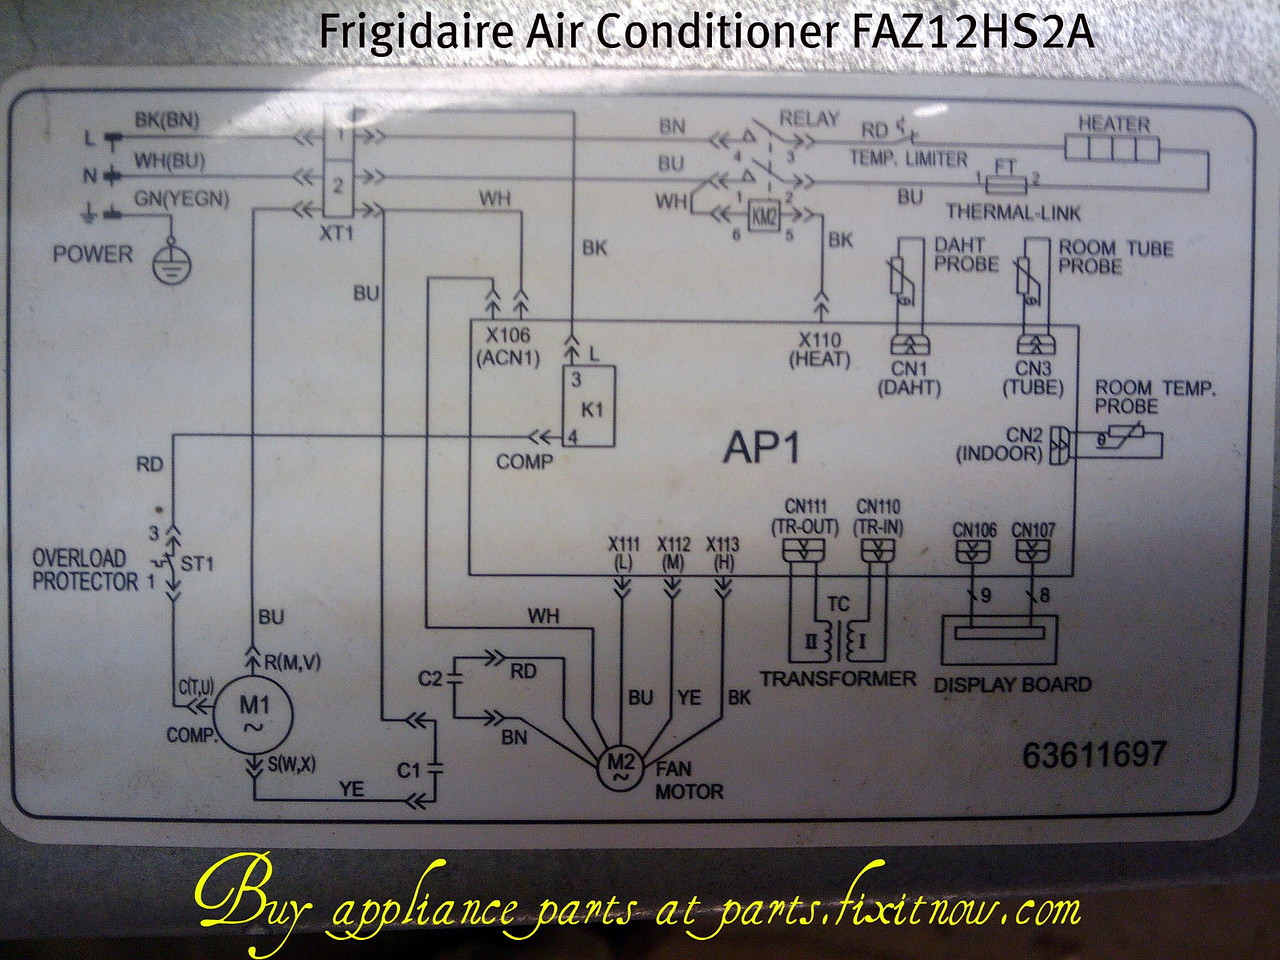 Wiring diagrams and schematics appliantology frigidaire air conditioner faz12hs2a eng 13 schematic asfbconference2016 Choice Image